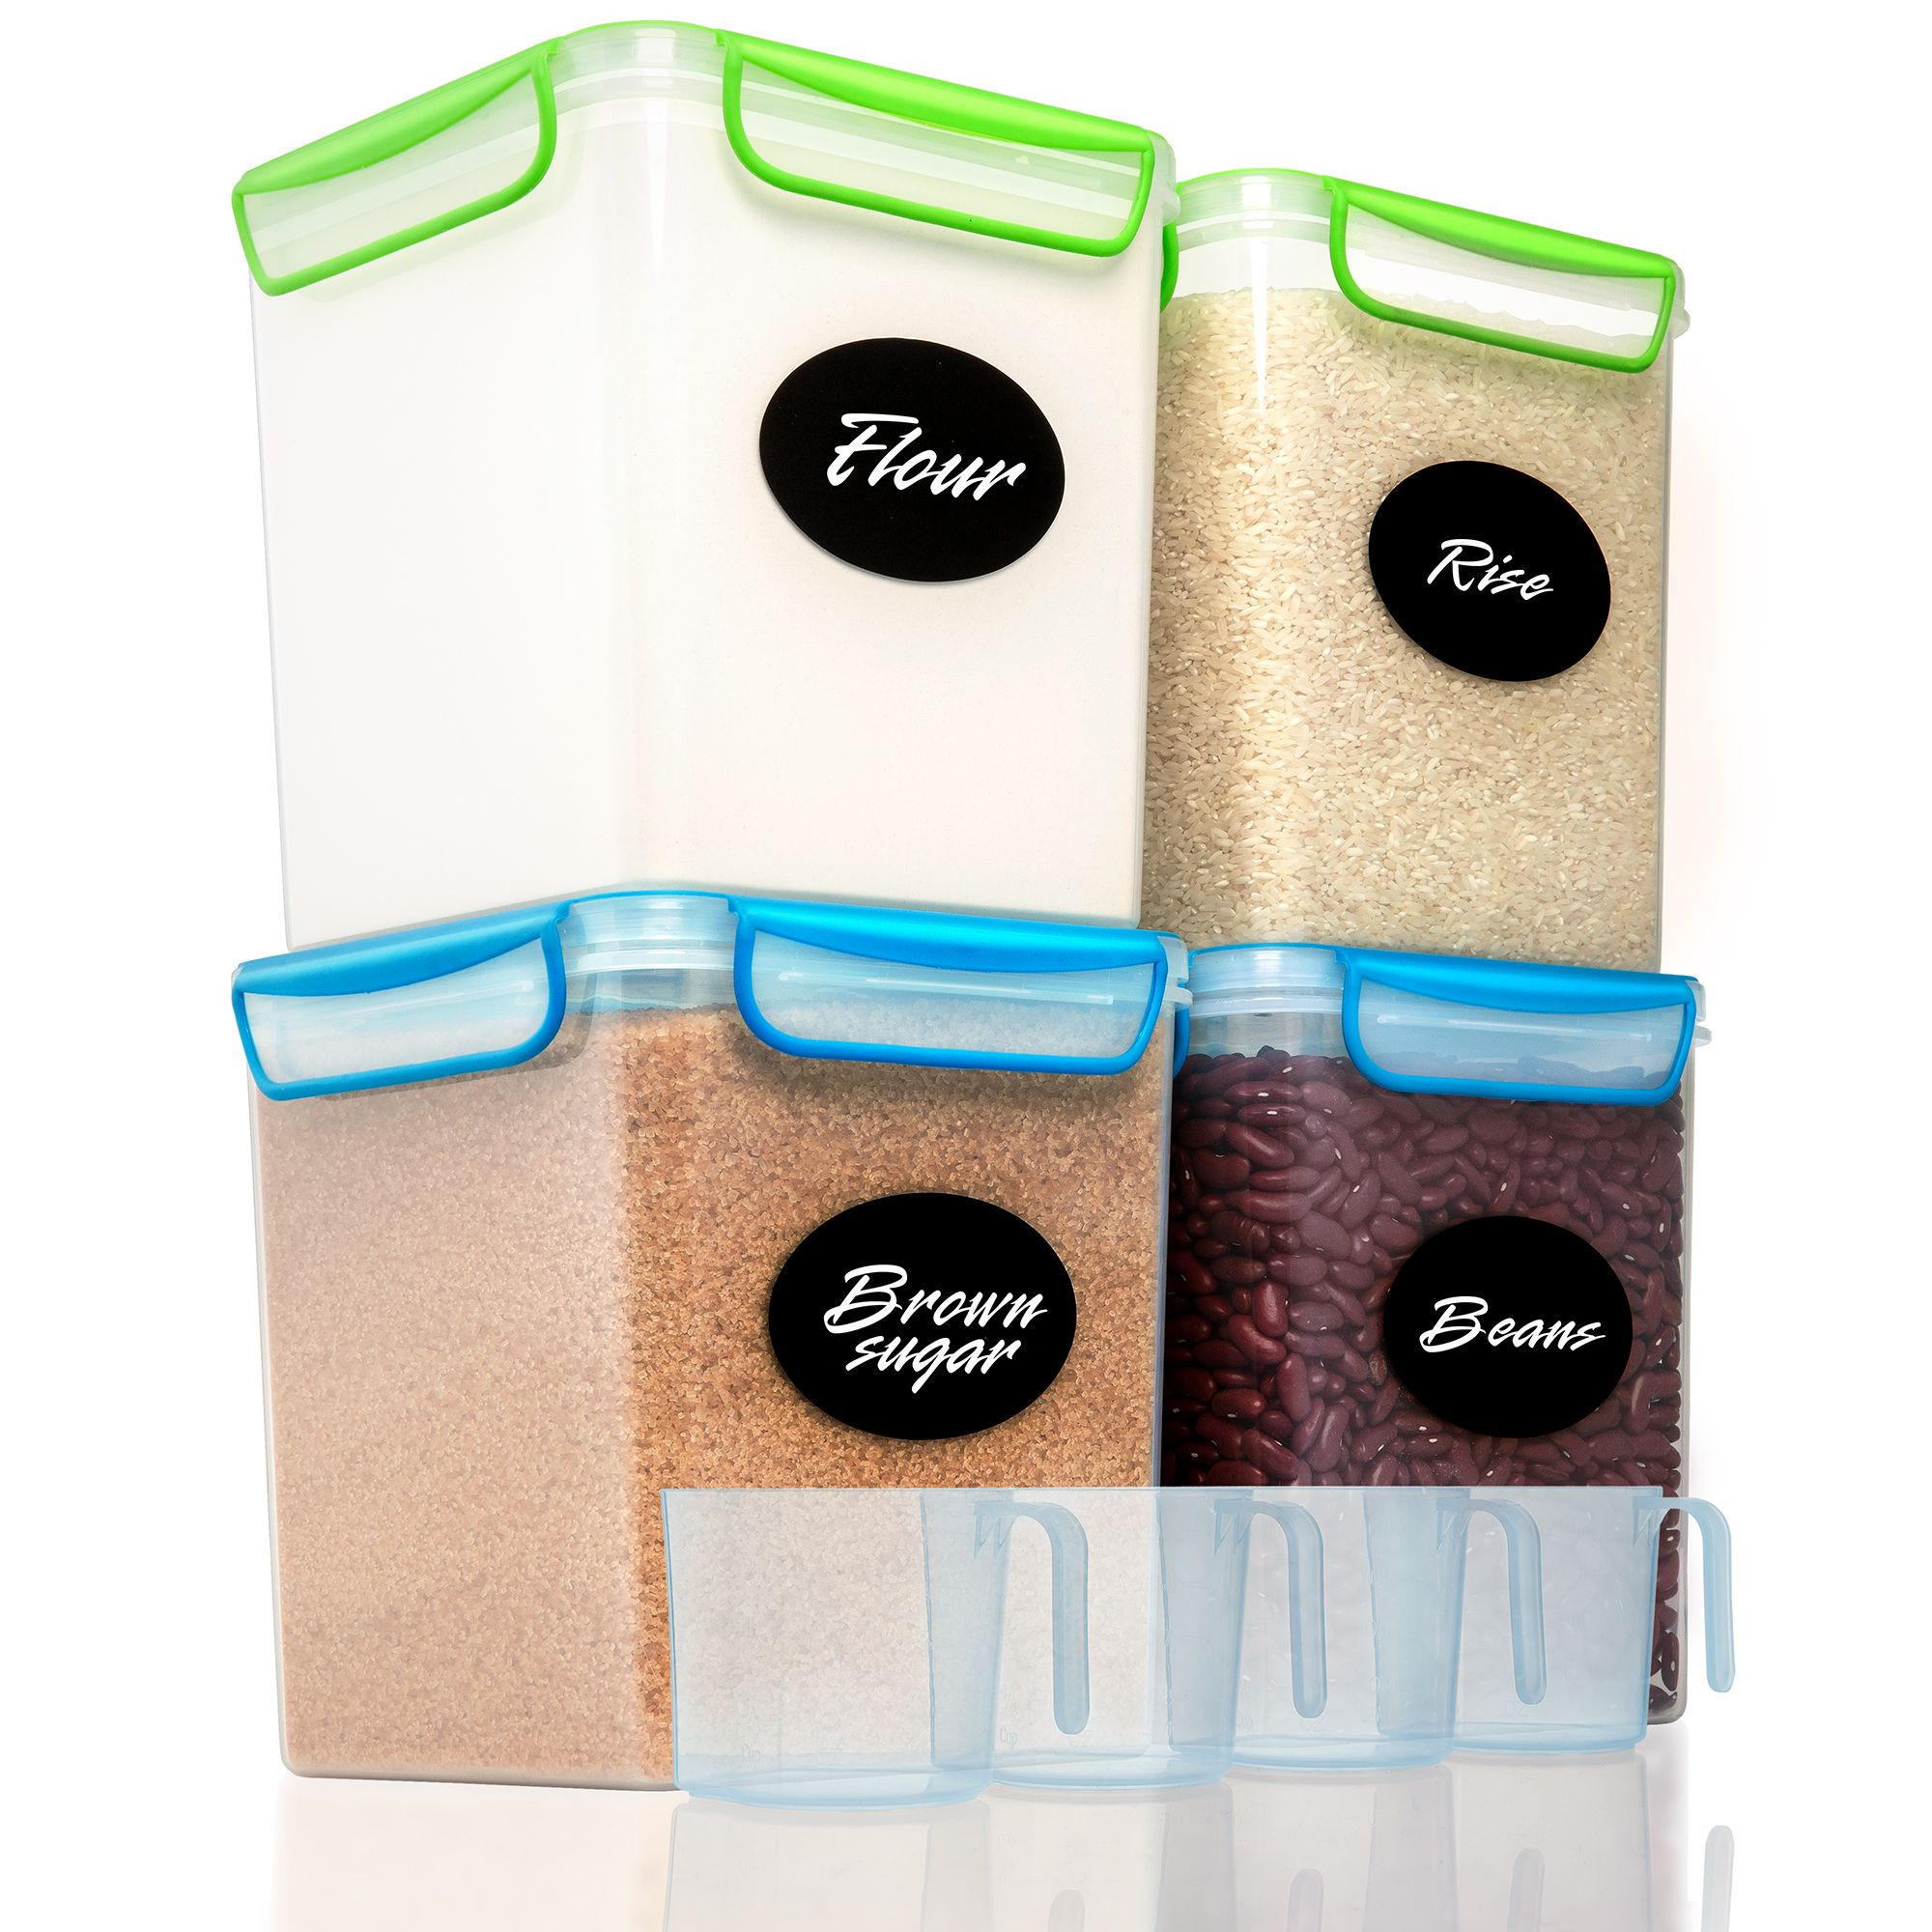 Goodcups 4l Airtight Food Storage Containers Airtight Food Storage Containers Airtight Food Storage Dry Food Storage